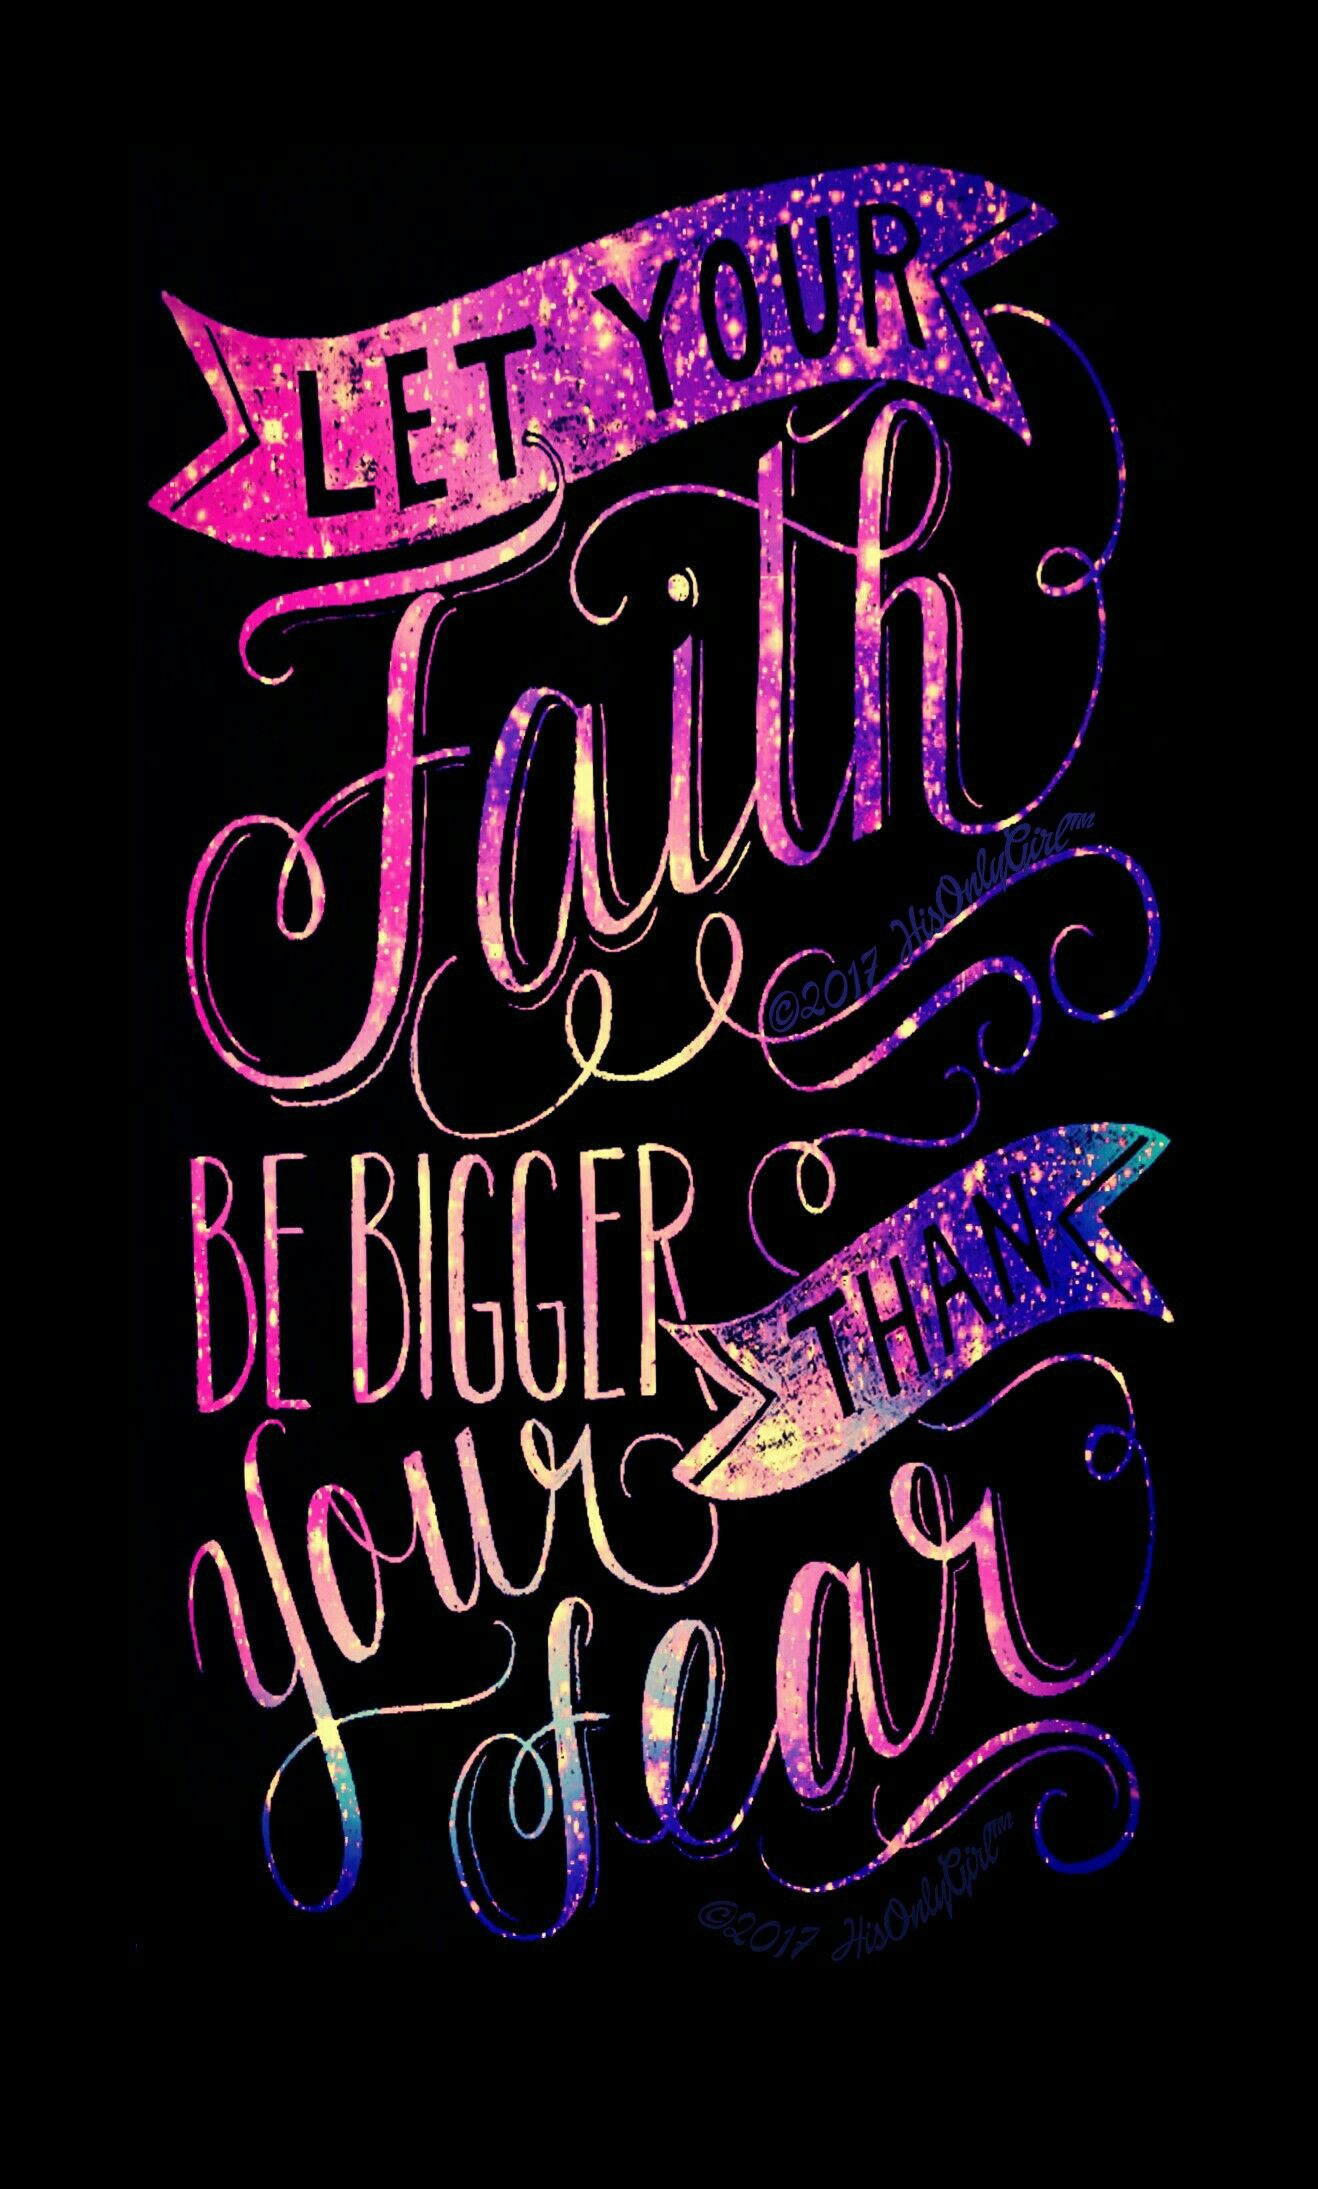 FAITH over FEAR galaxy wallpaper I created for the app CocoPPa! | Iphone wallpapers | Wallpaper ...